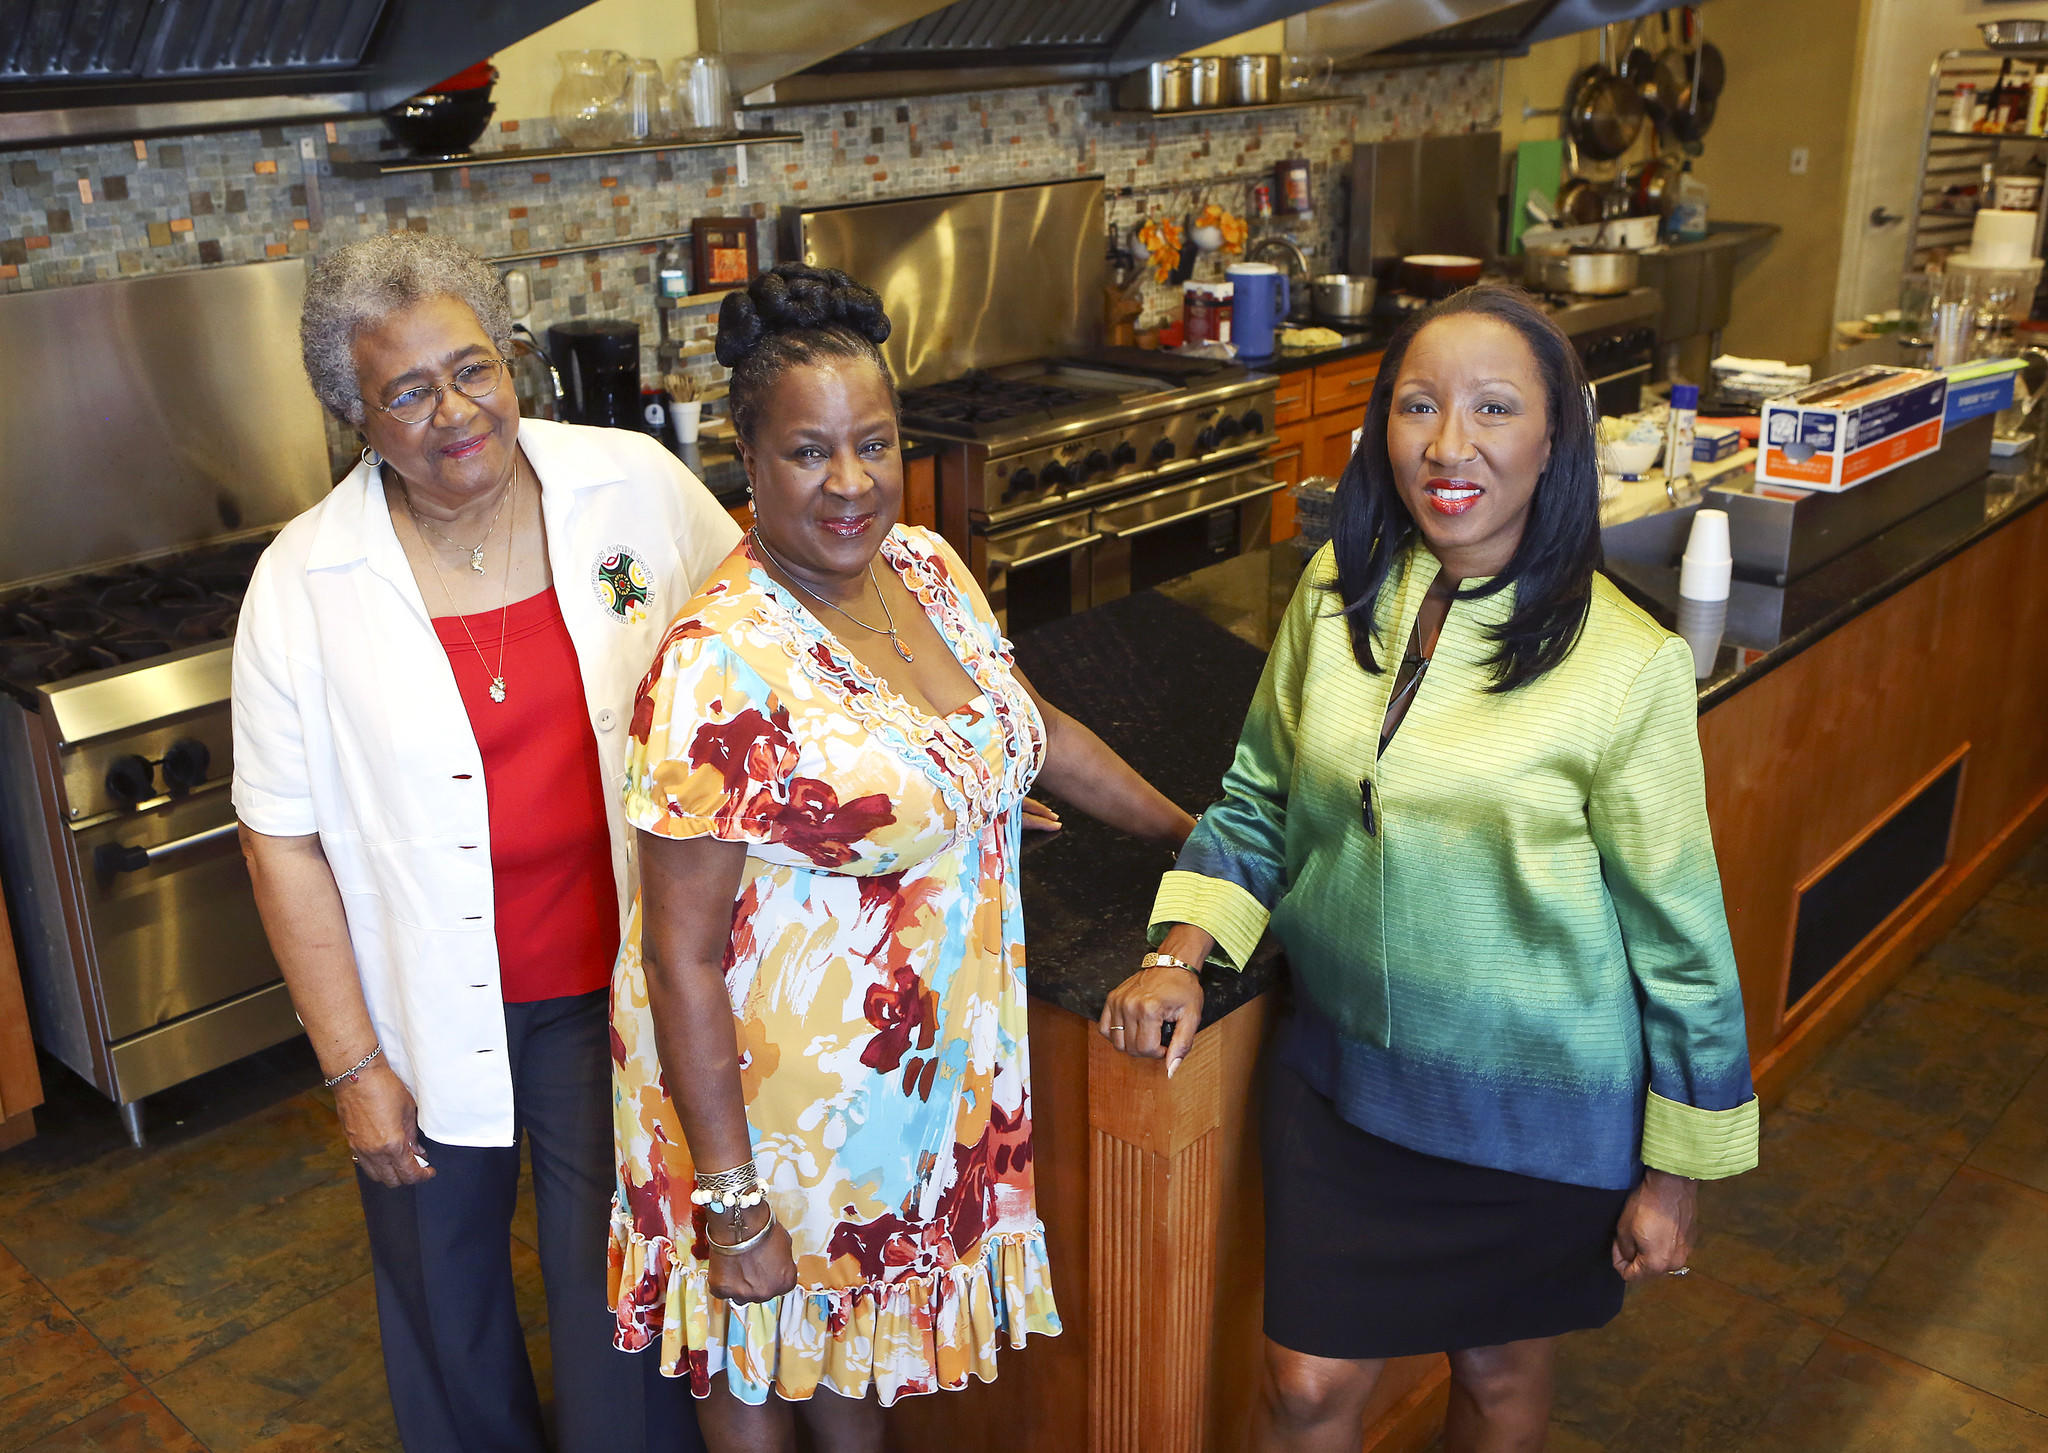 Ellareetha Carson, Fabiola Gaines and Roniece Weaver, left to right, inside of the kitchen at Hebni Nutrition Consultants, Inc. in Orlando on August 21, 2013.